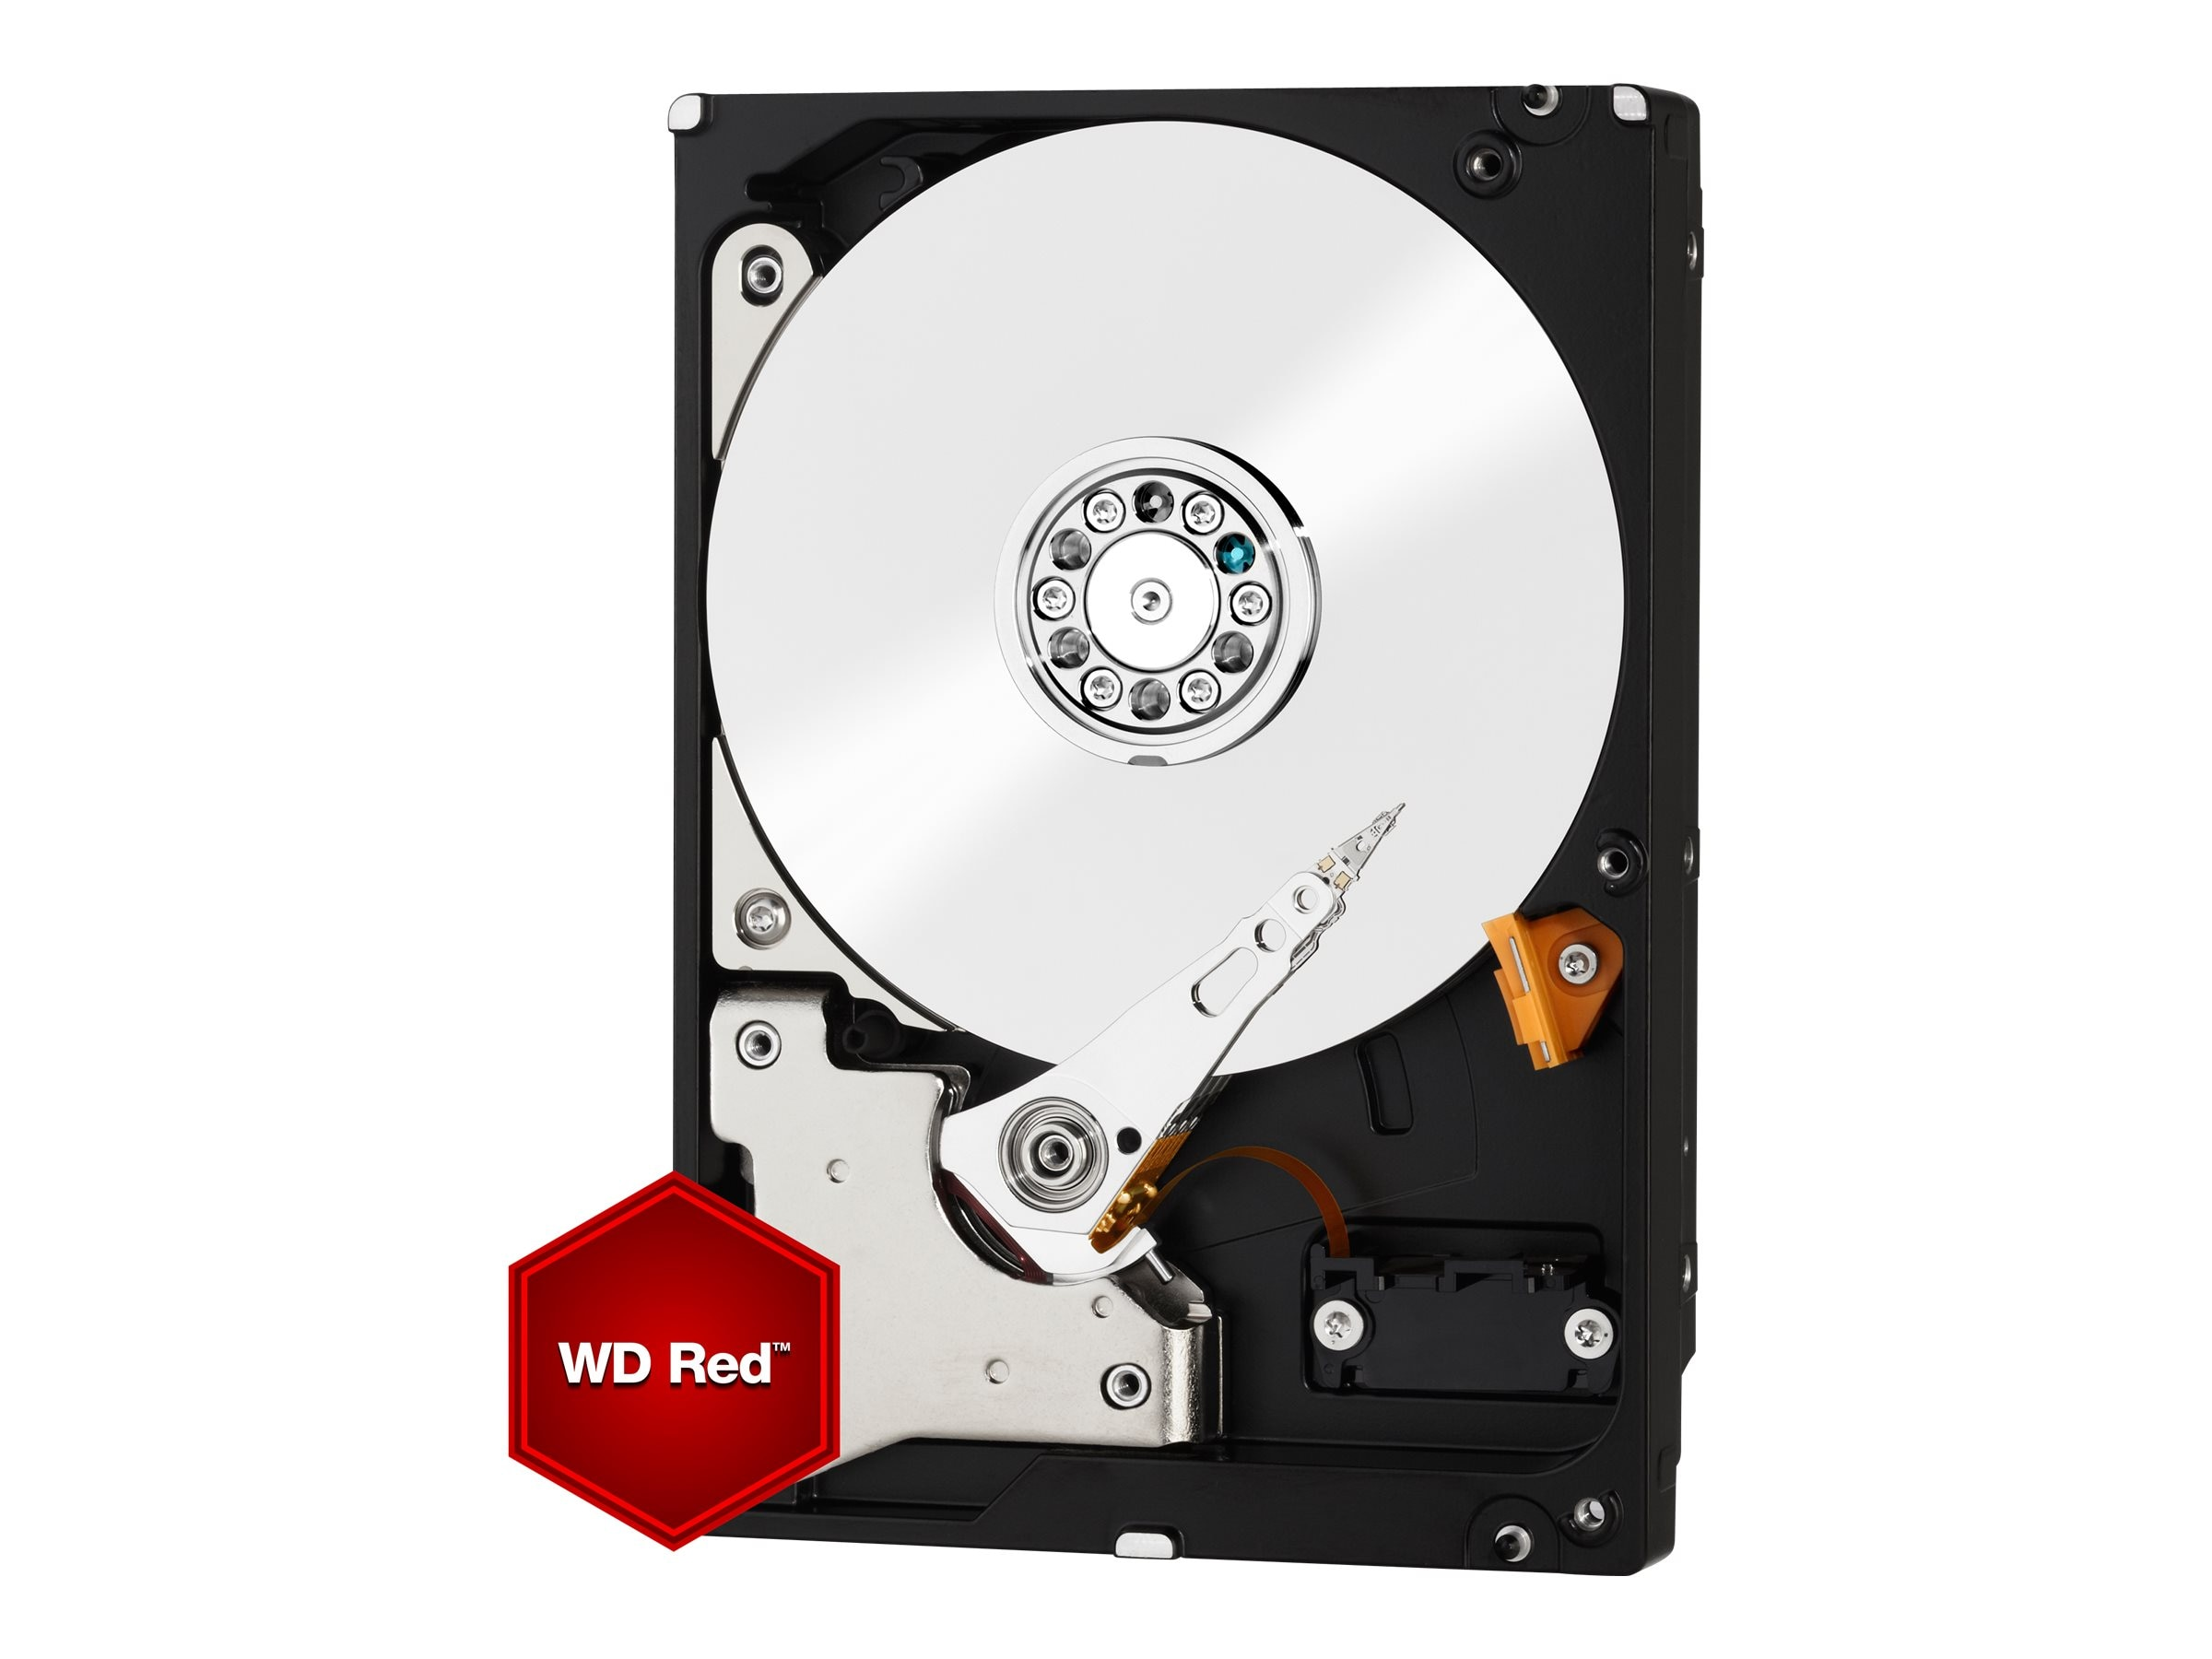 WD 3TB WD Red SATA 6Gb s 3.5 Internal NAS Hard Drive, WD30EFRX